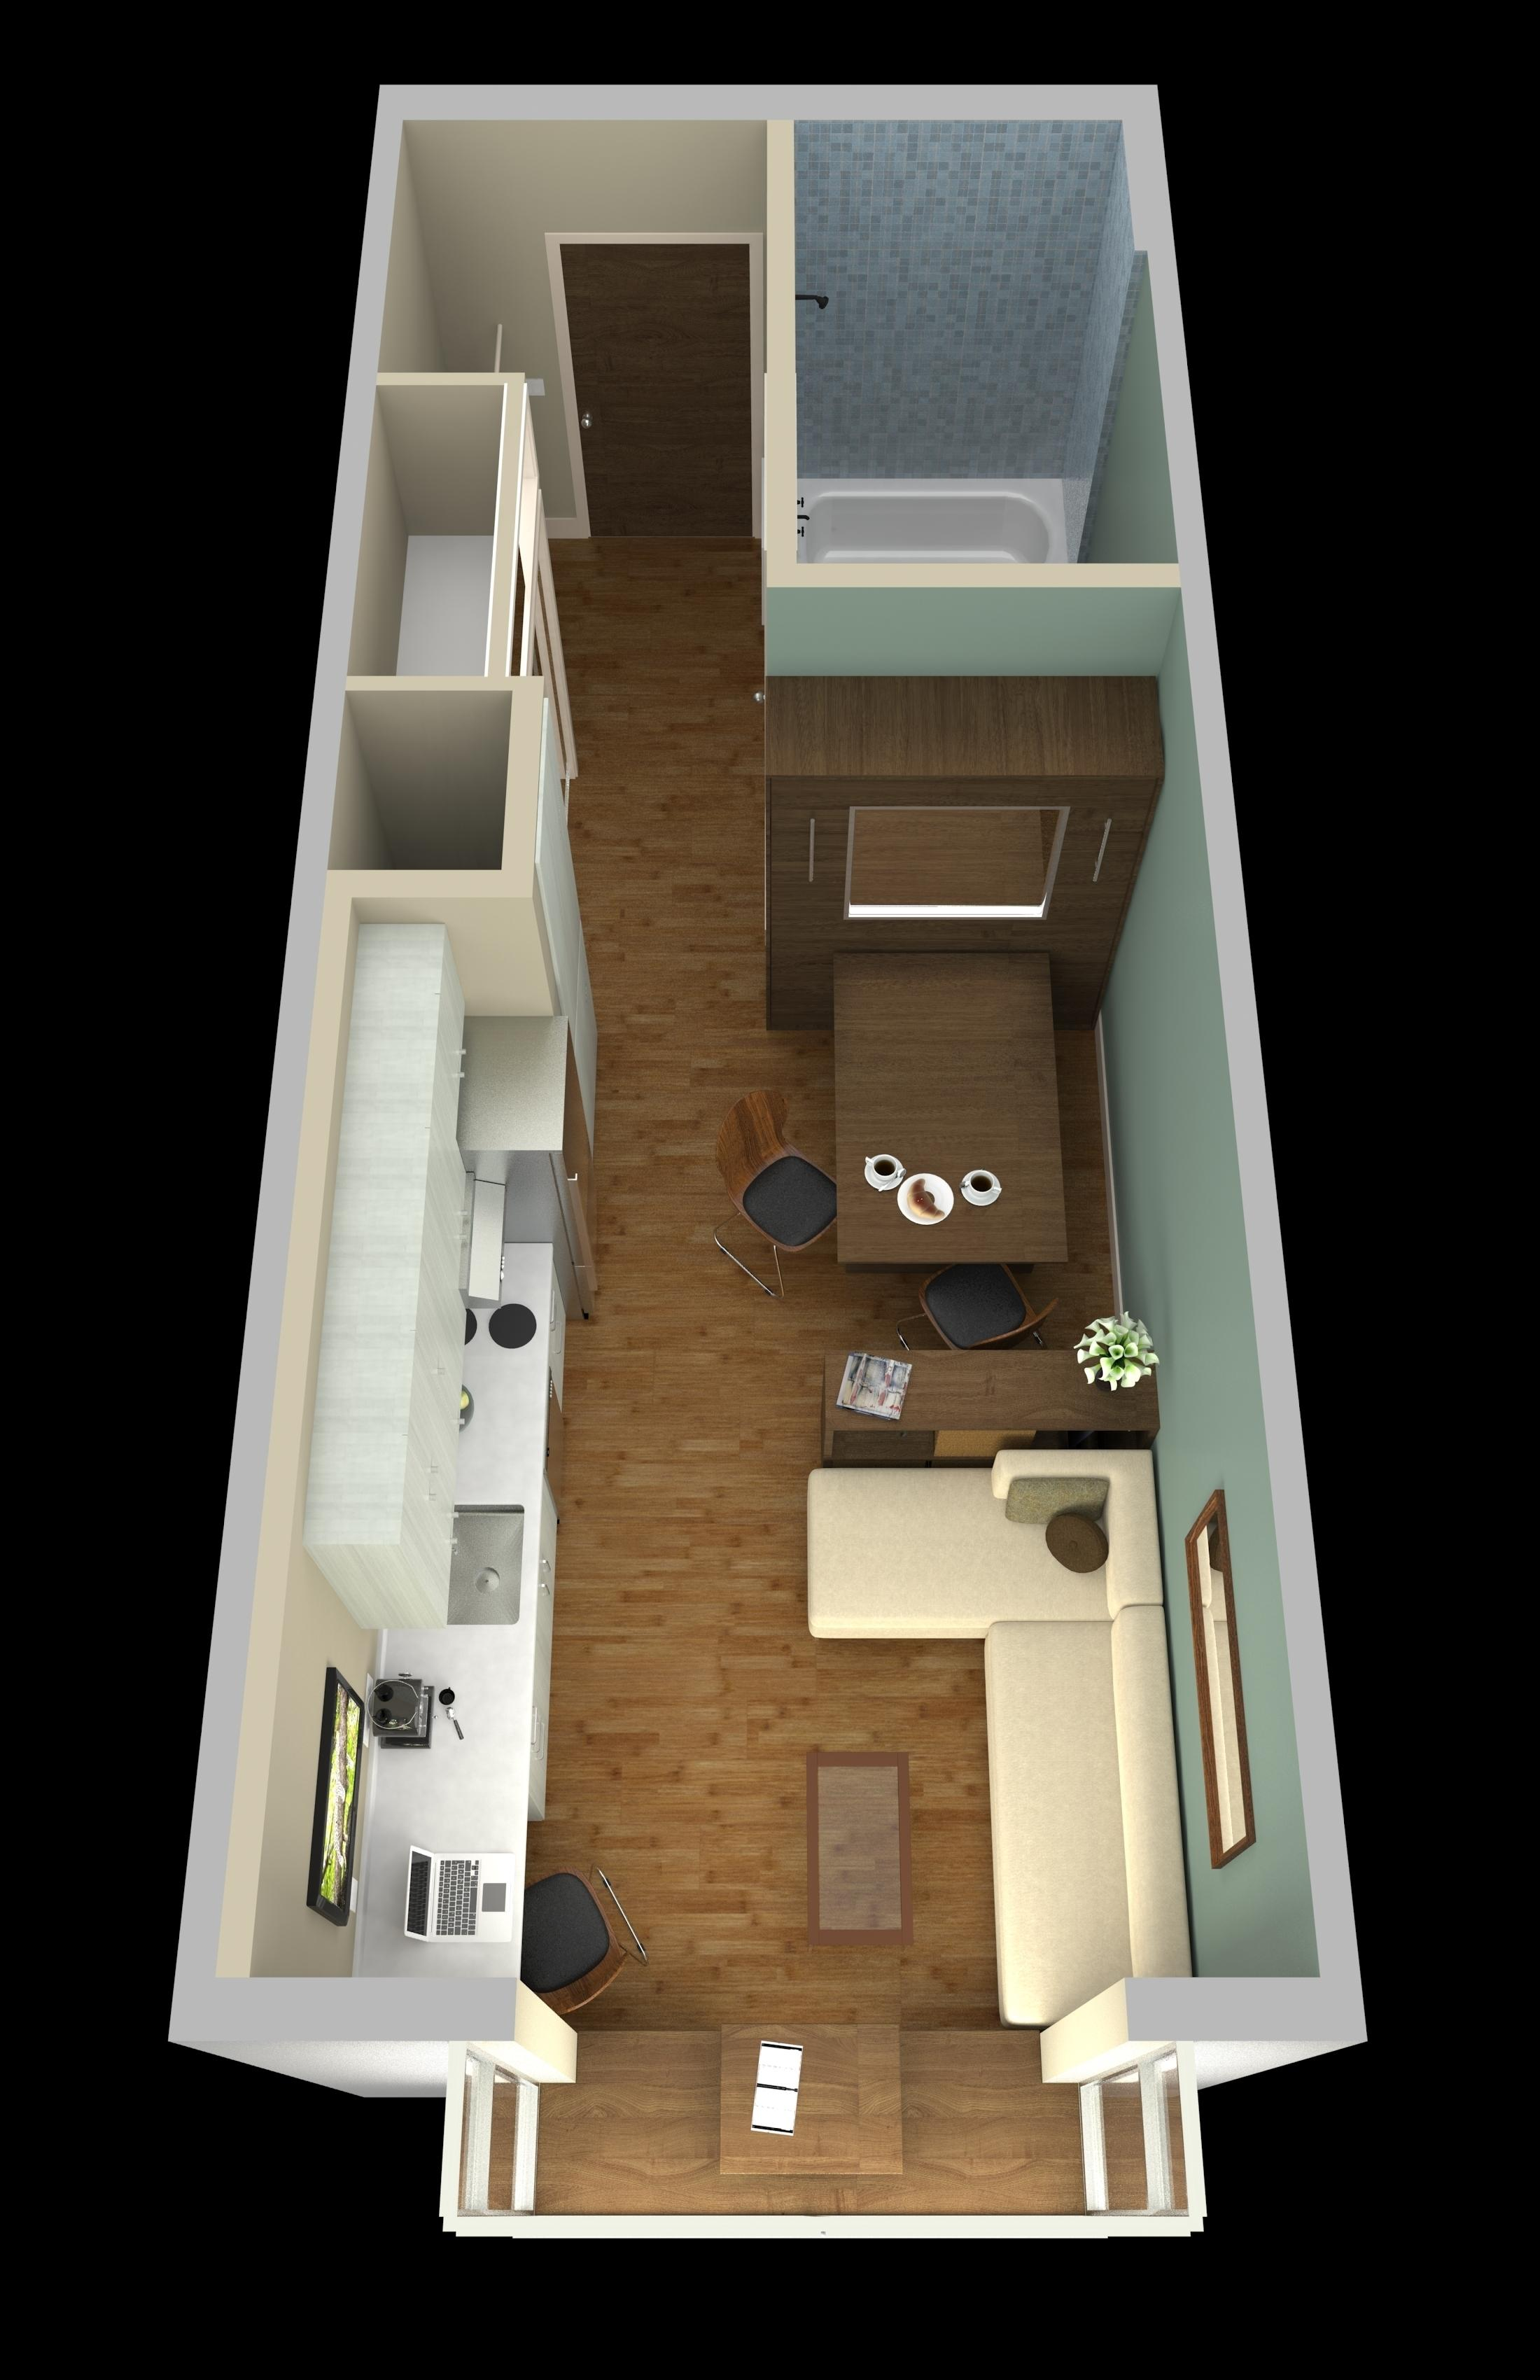 Spaces Must Serve Double Duty In Micro Units U2014 Like The Dining Table Above  That Converts Into A Murphy Bed.